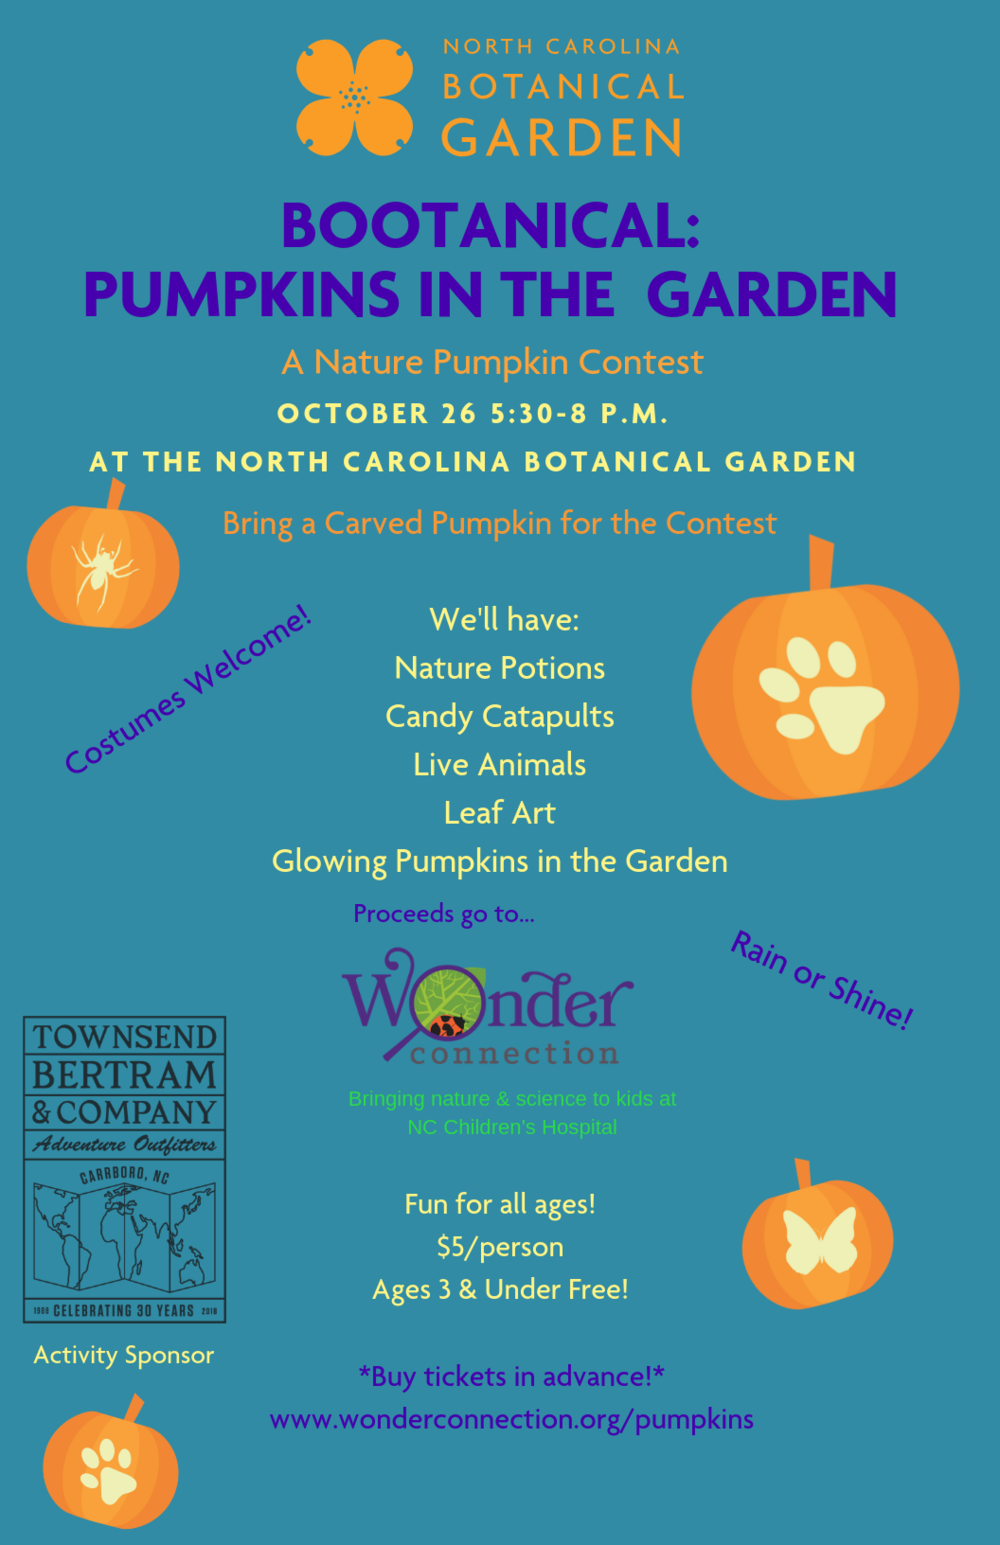 Bring a Nature-Themed Jackolantern for the Contest! - Natural PotionsLeaf Art with pressed leavesCandy catapults & Ghost Robots from Durham AcademyLIVE animals from the Piedmont Wildlife CenterSculpture scavenger huntToddler cornerCupcakes for everyone at 7:25pm; & fancy ribbons for pumpkin contest winners.Feel free to pack a picnic or order delivery! :)